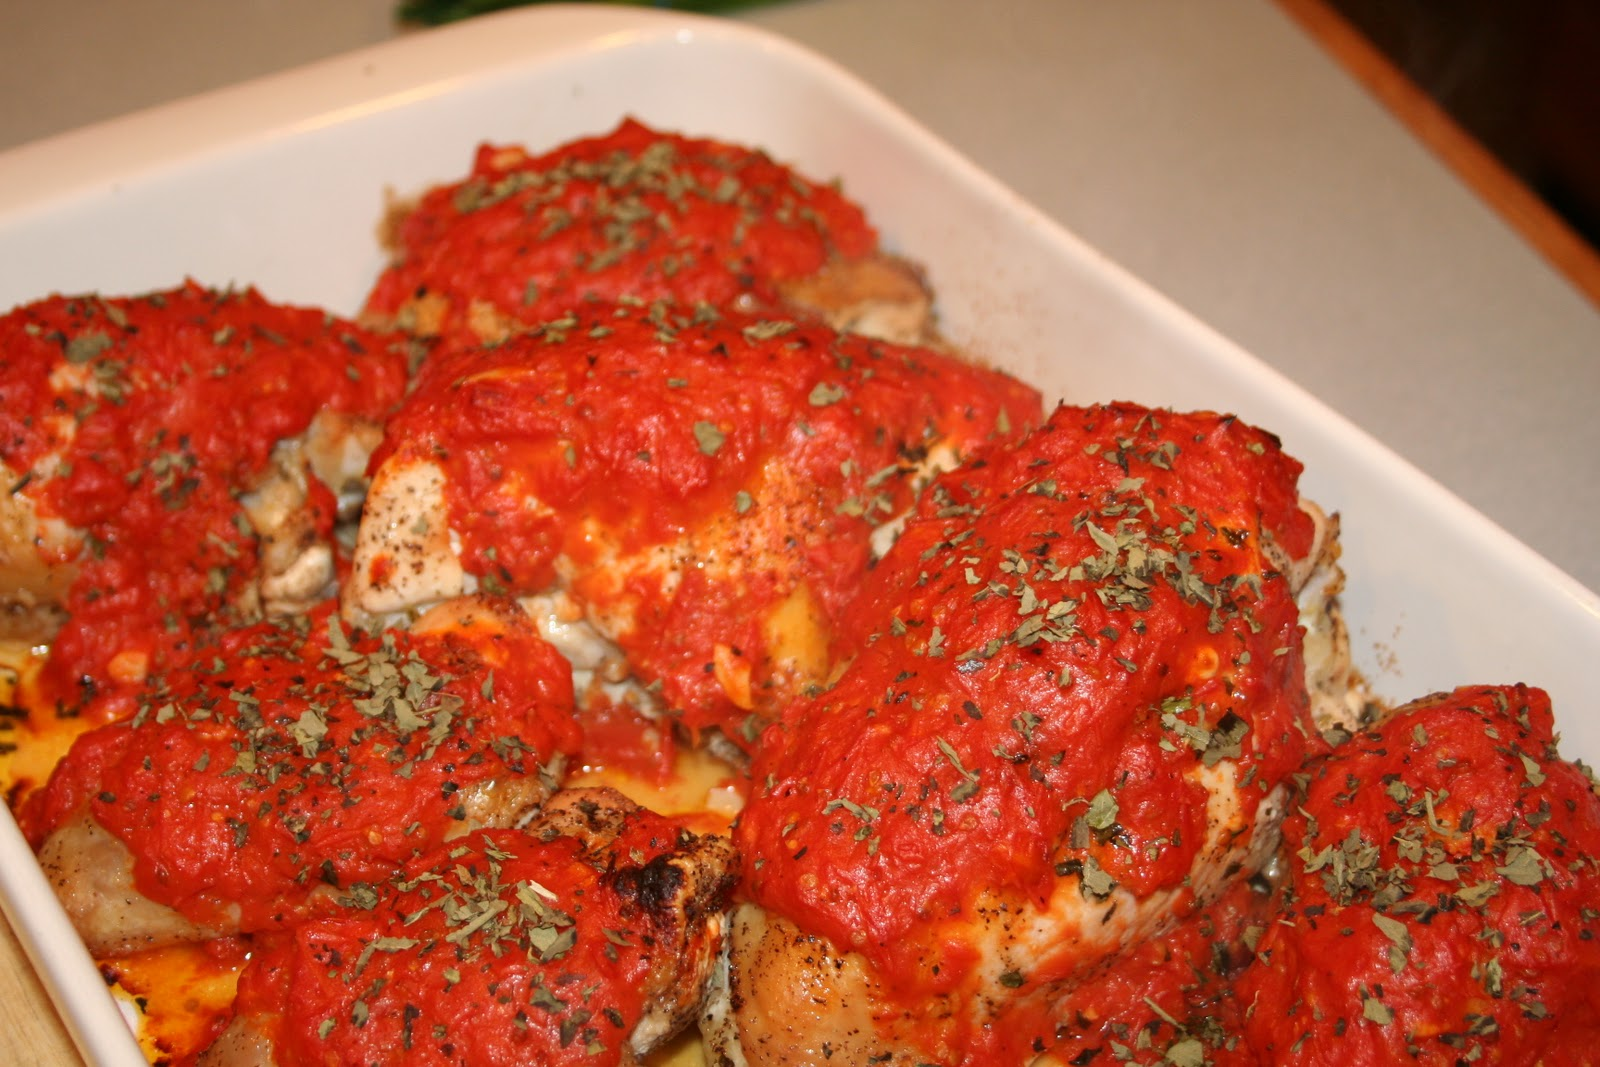 COOK WITH SUSAN: Baked Chicken with Roasted Tomato Sauce